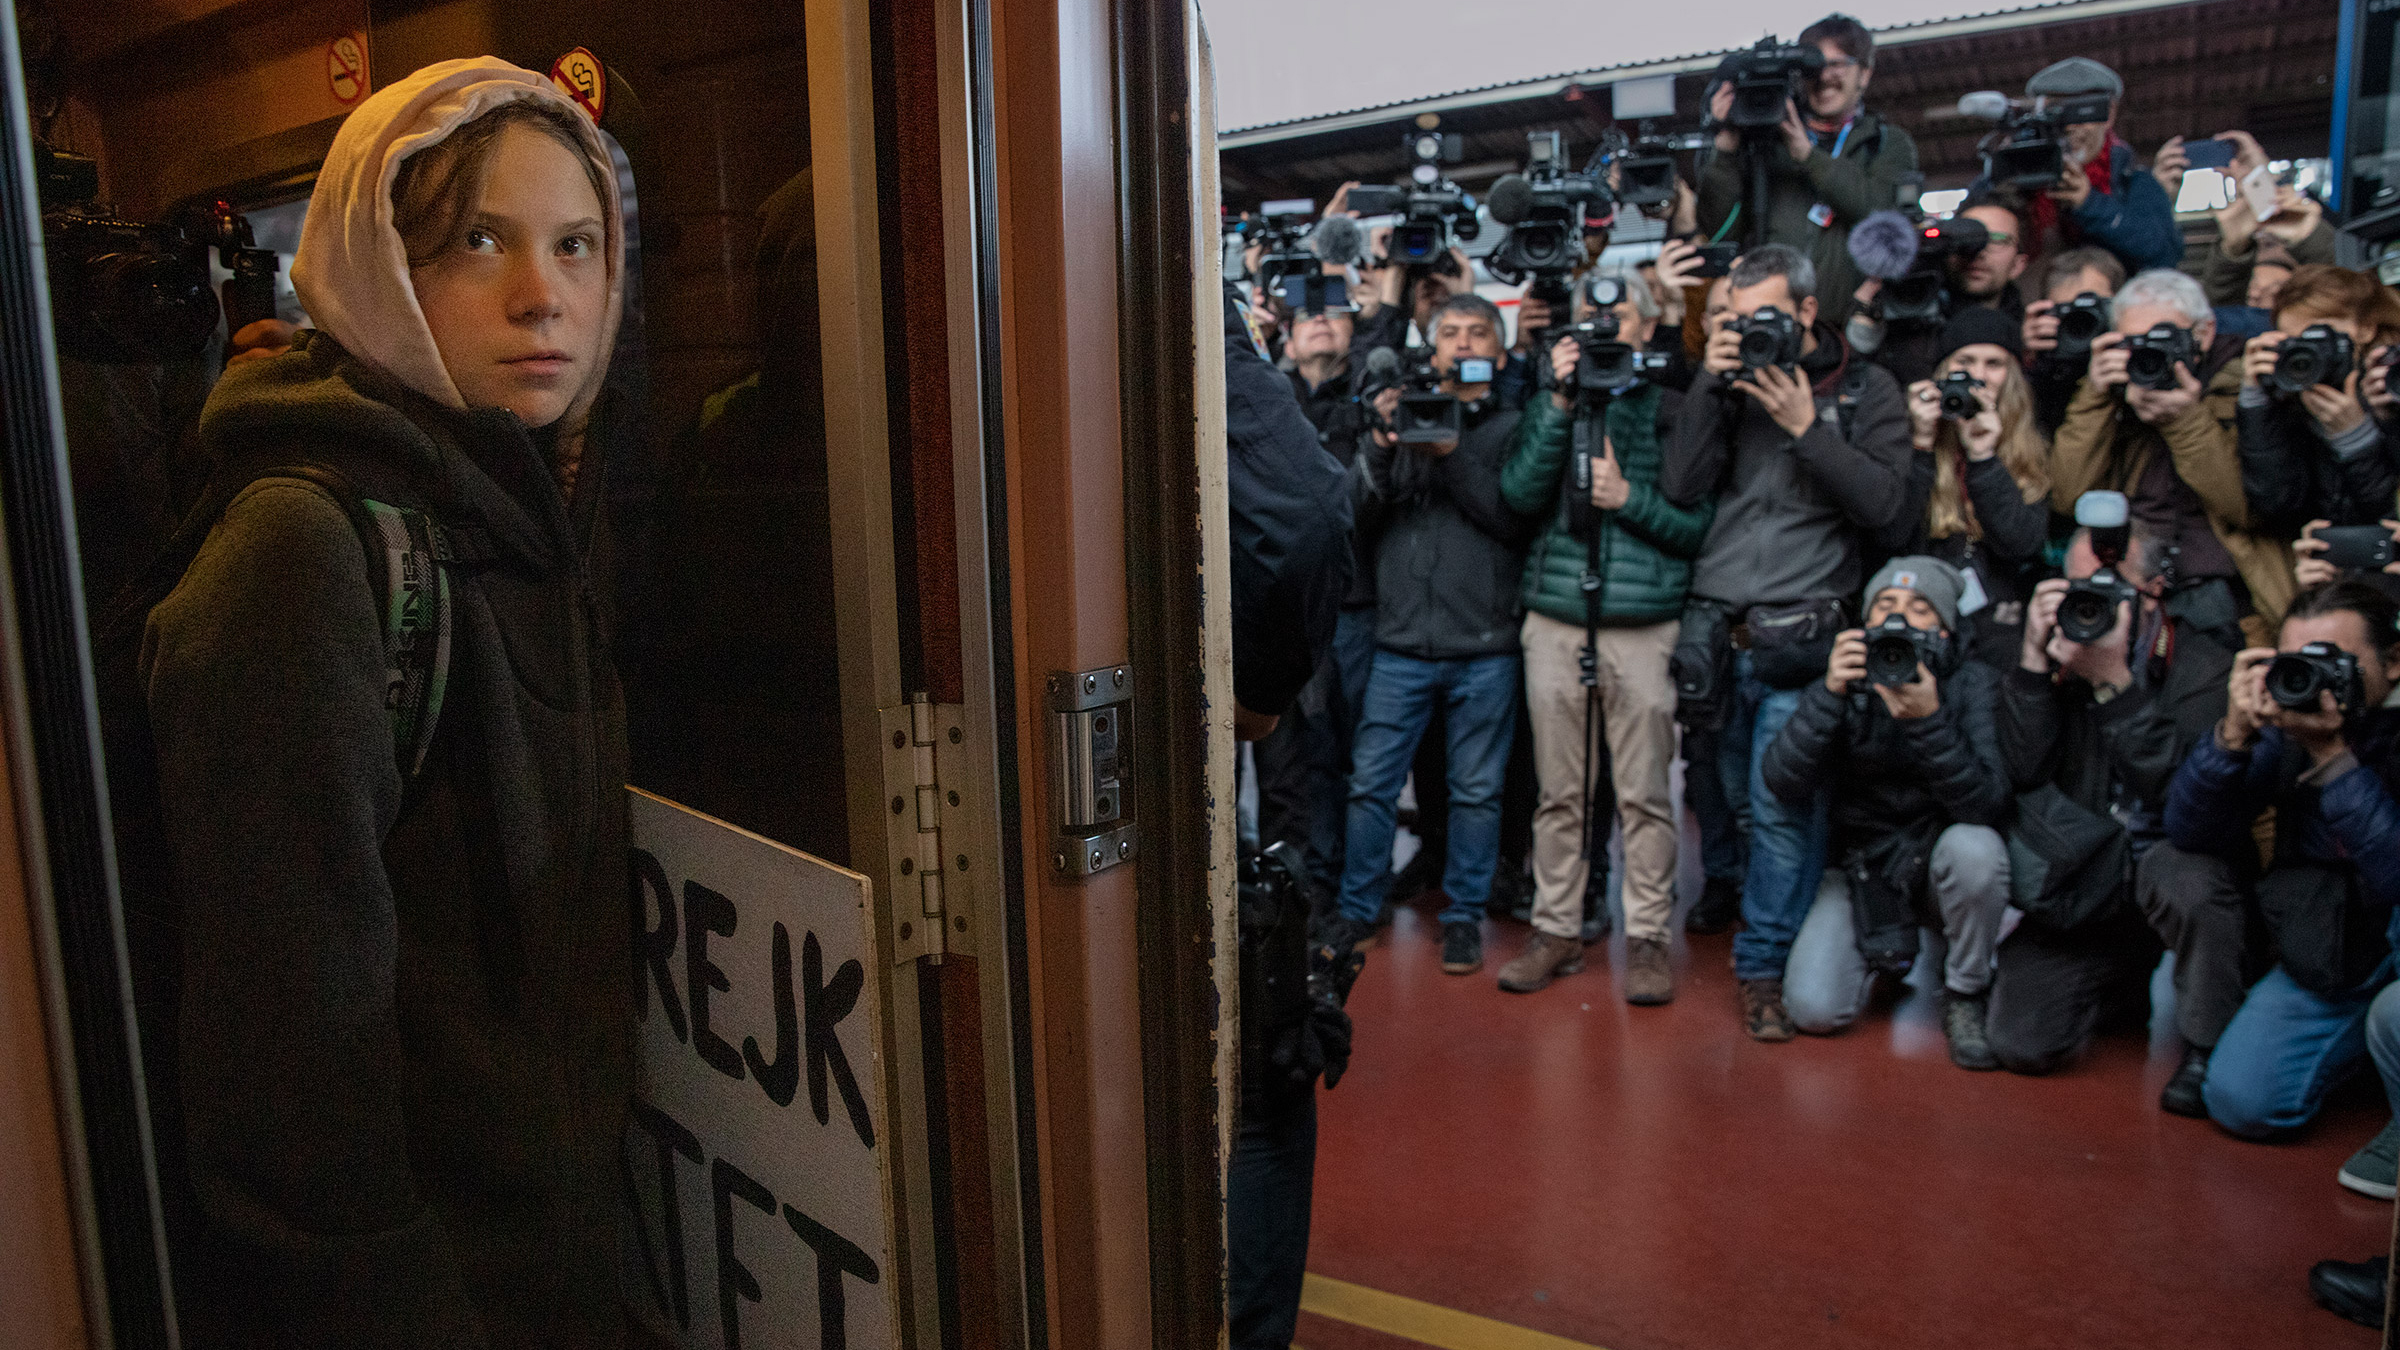 Greta Thunberg arrives in Madrid for the last U.N. climate summit before a crucial deadline in 2020. Dec. 23 issue.